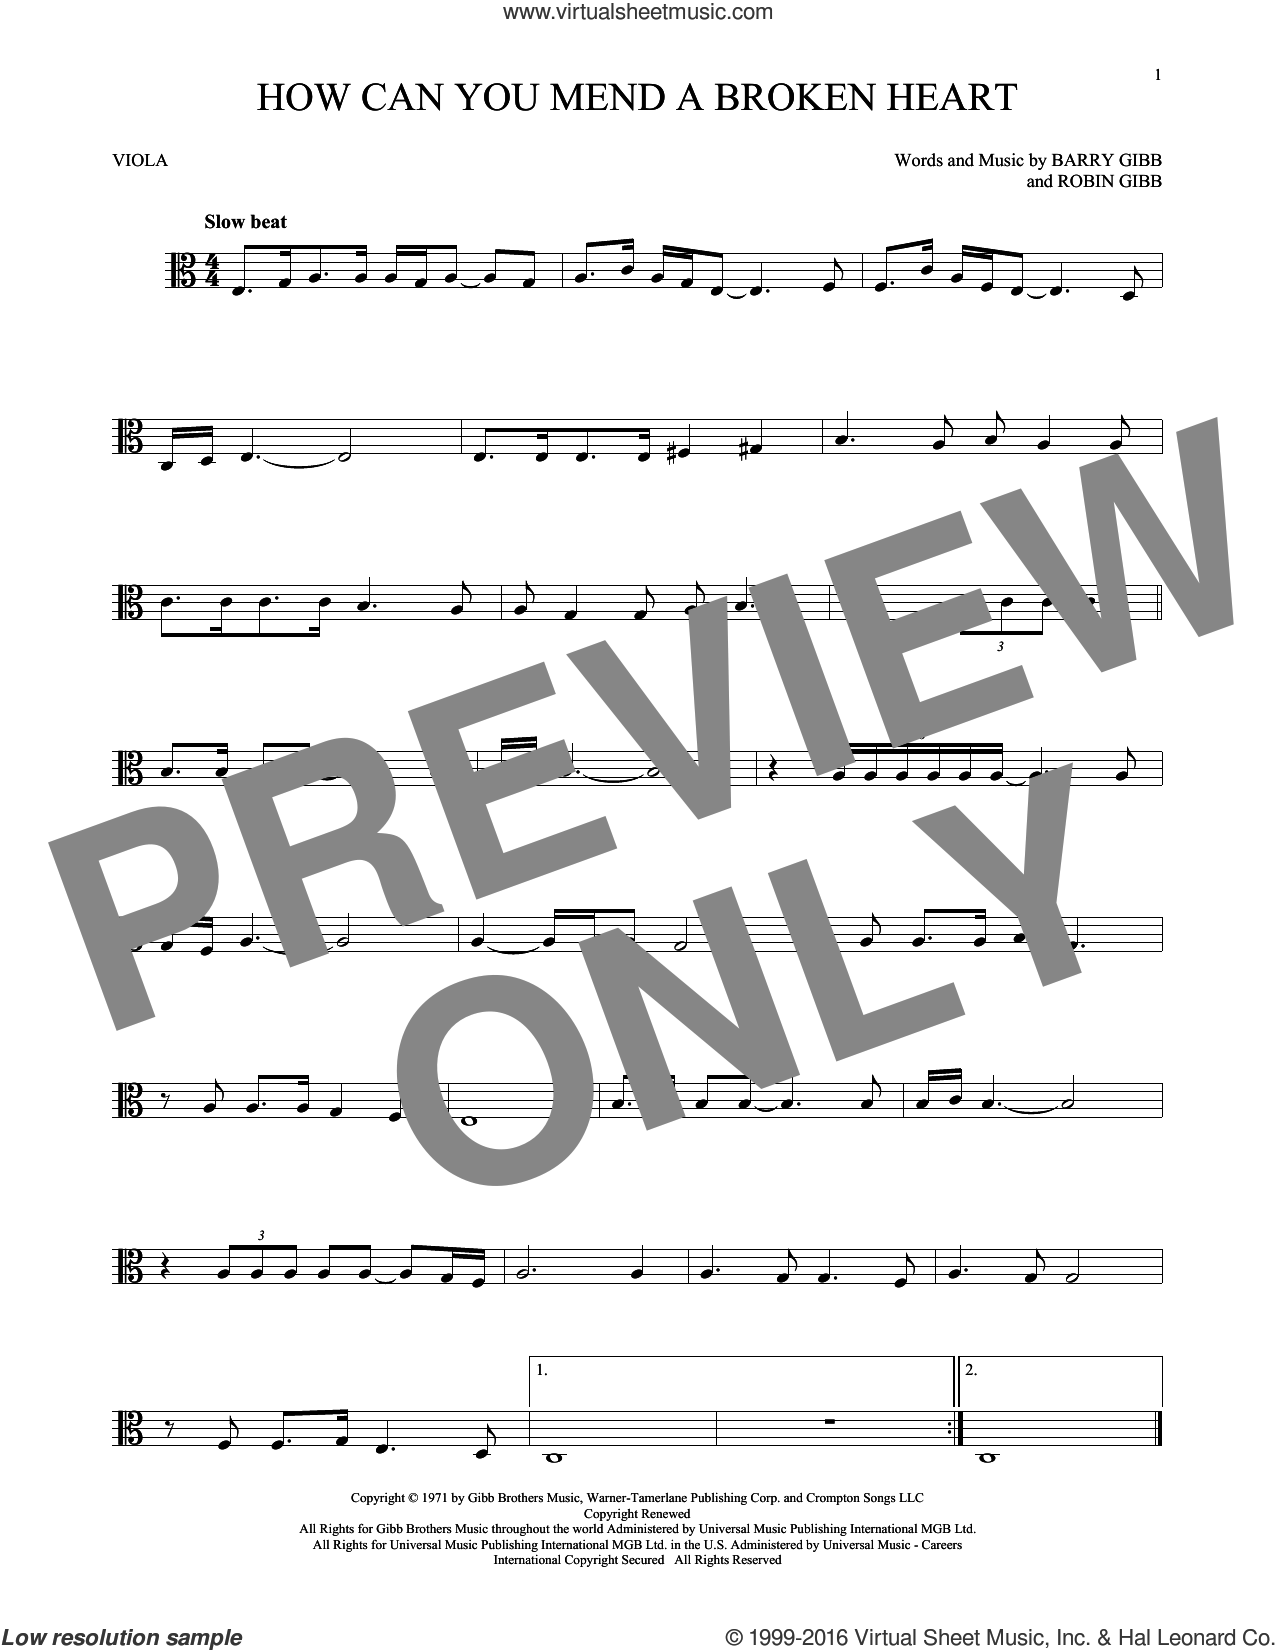 How Can You Mend A Broken Heart sheet music for viola solo by Robin Gibb, Bee Gees and Barry Gibb. Score Image Preview.